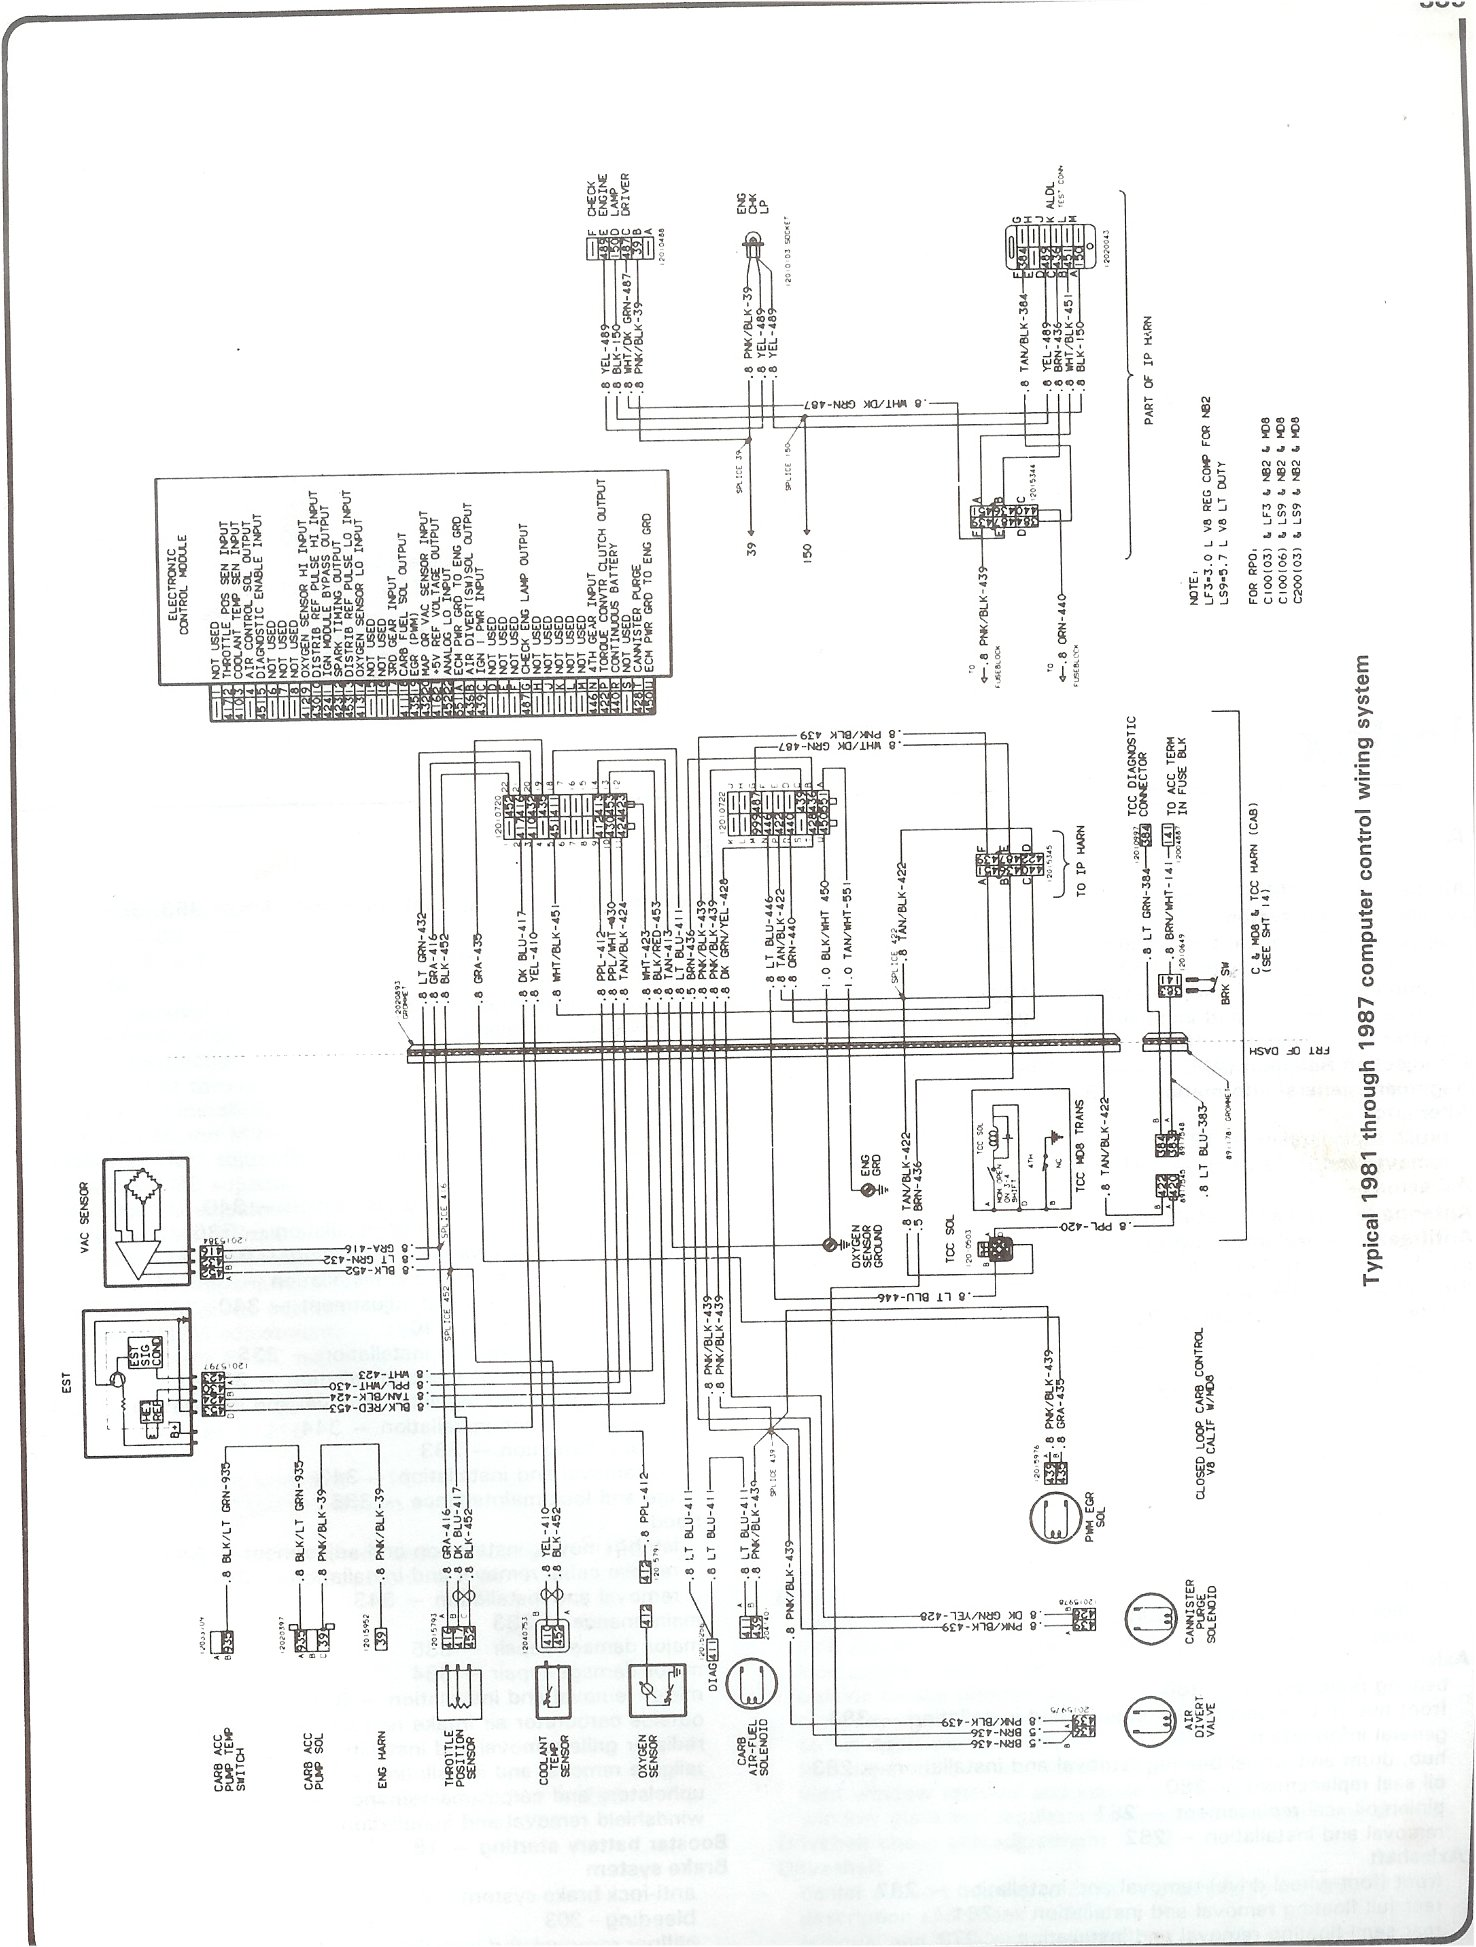 2000 Gmc Truck Radio Wiring Diagram Auto Electrical 1997 Bmw 528i Harness Complete 73